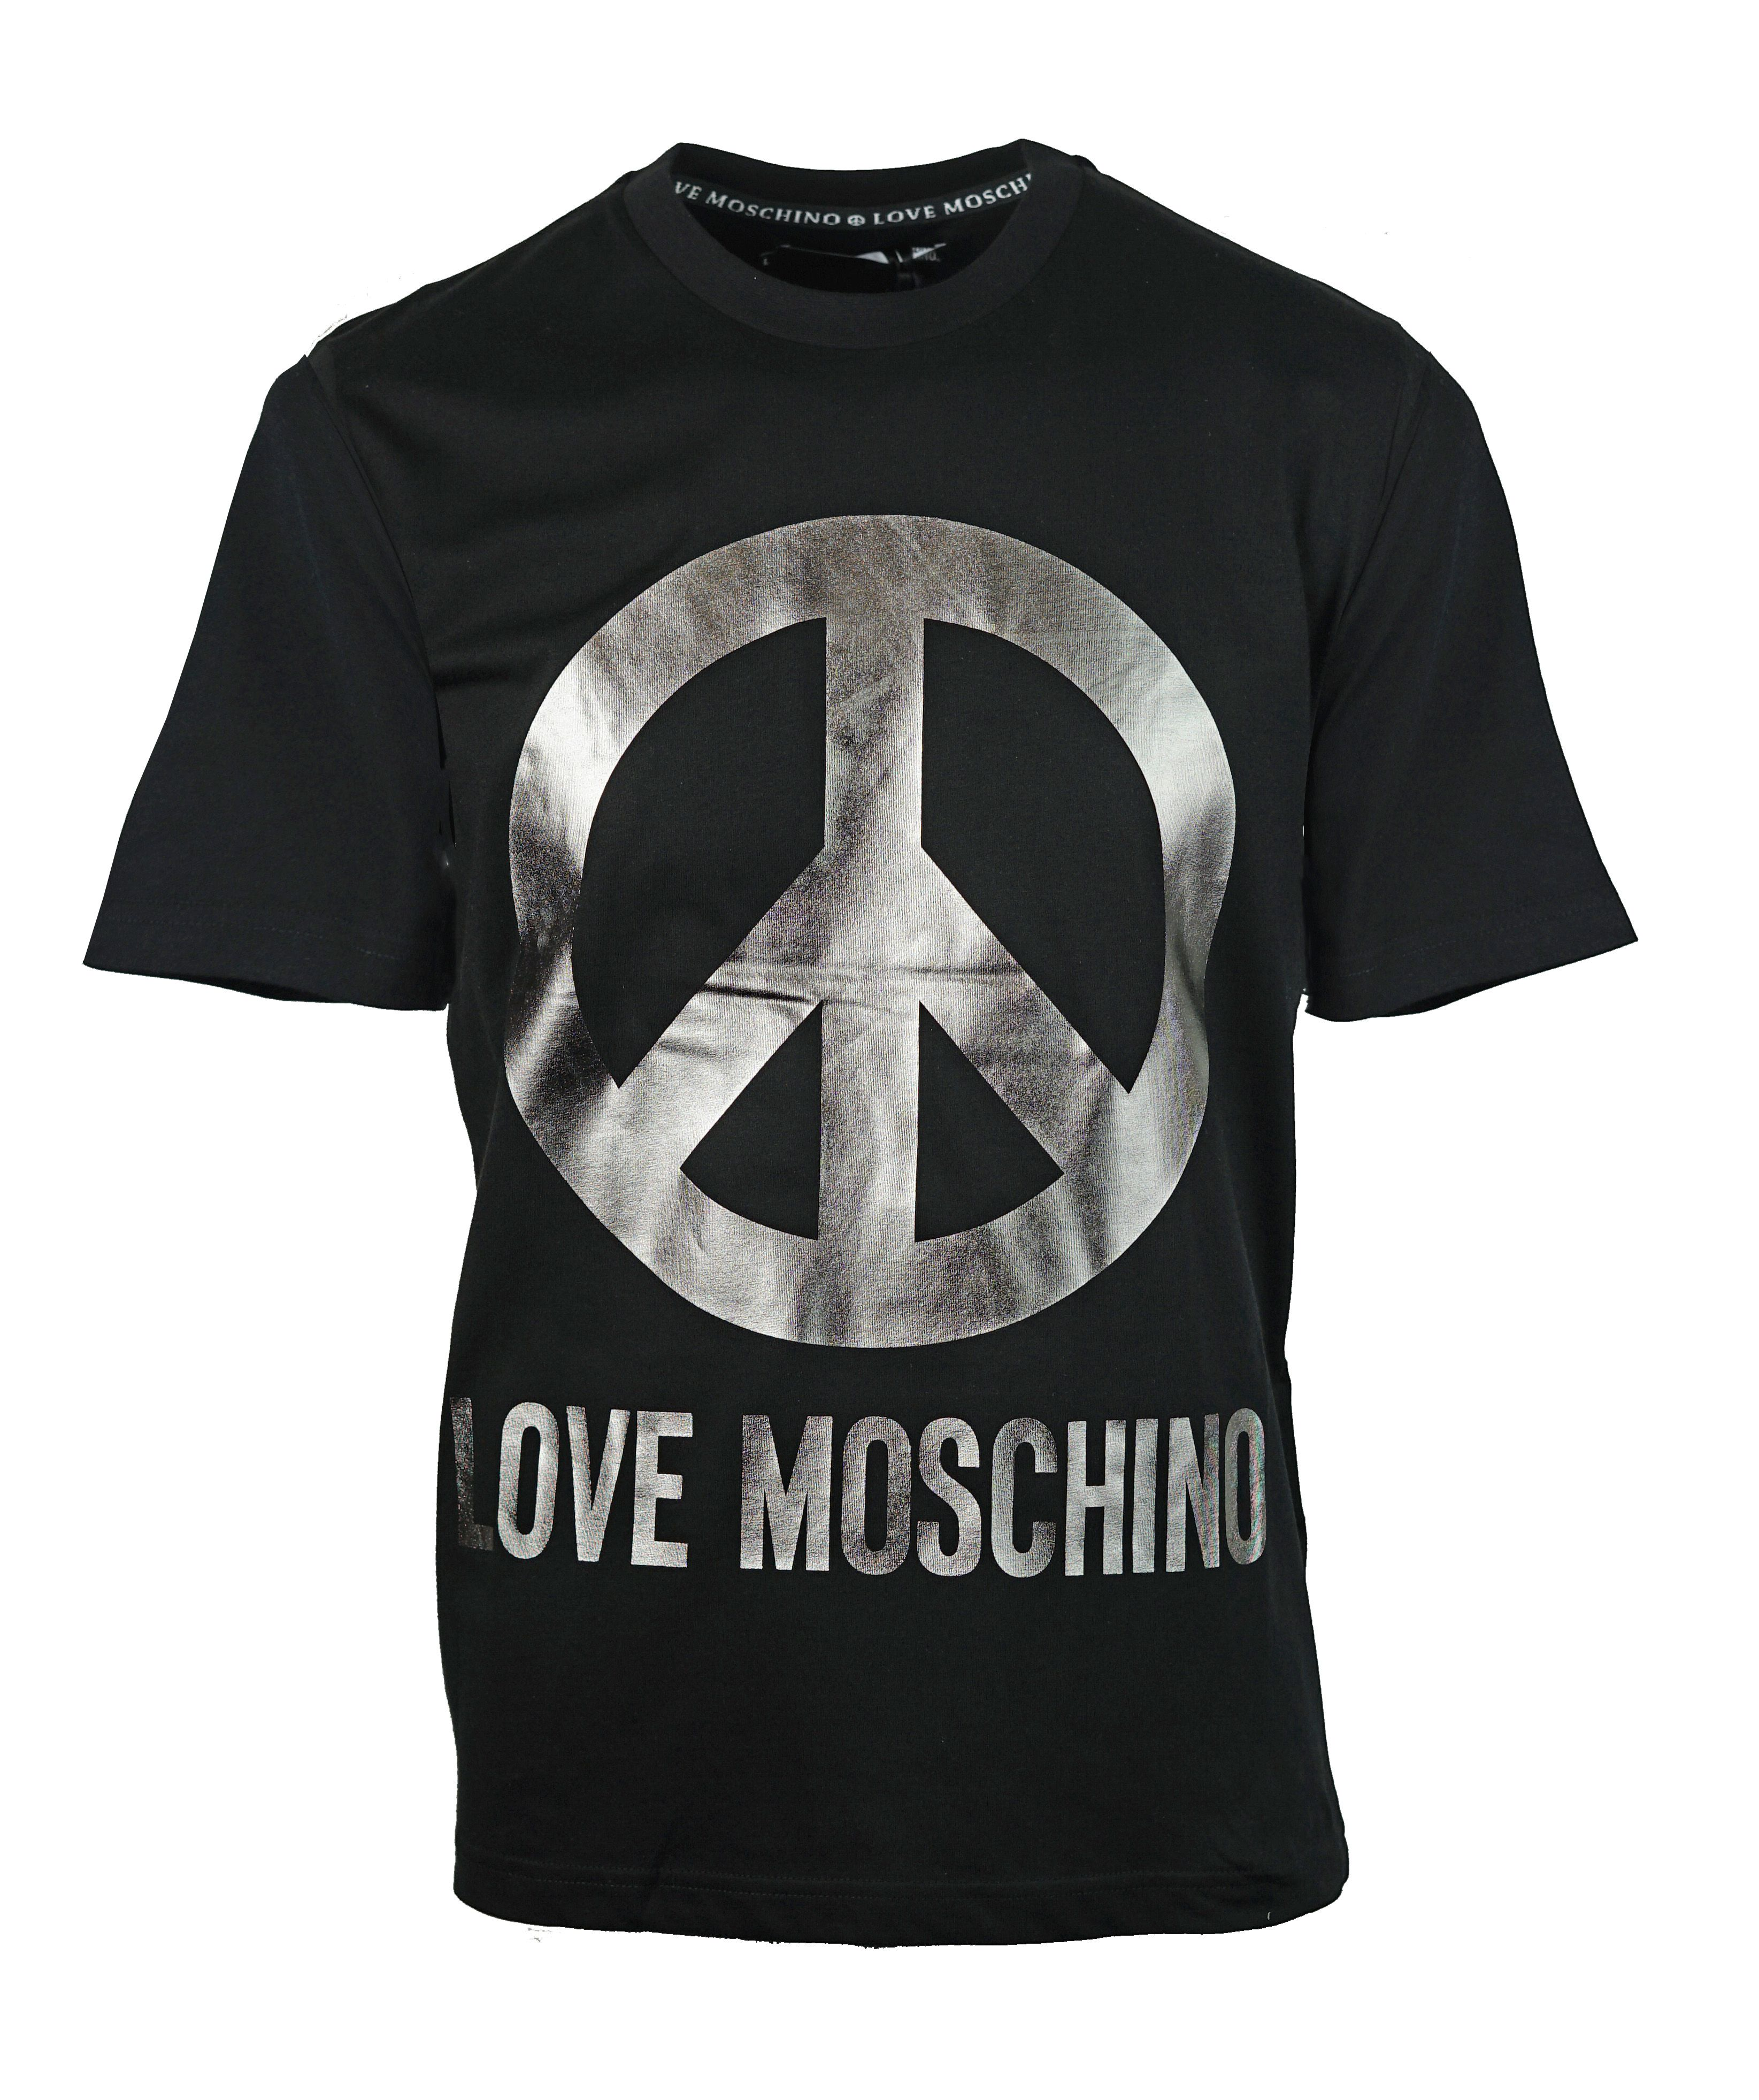 Love Moschino M 4 732 2Y M 3876 C74 T-Shirt